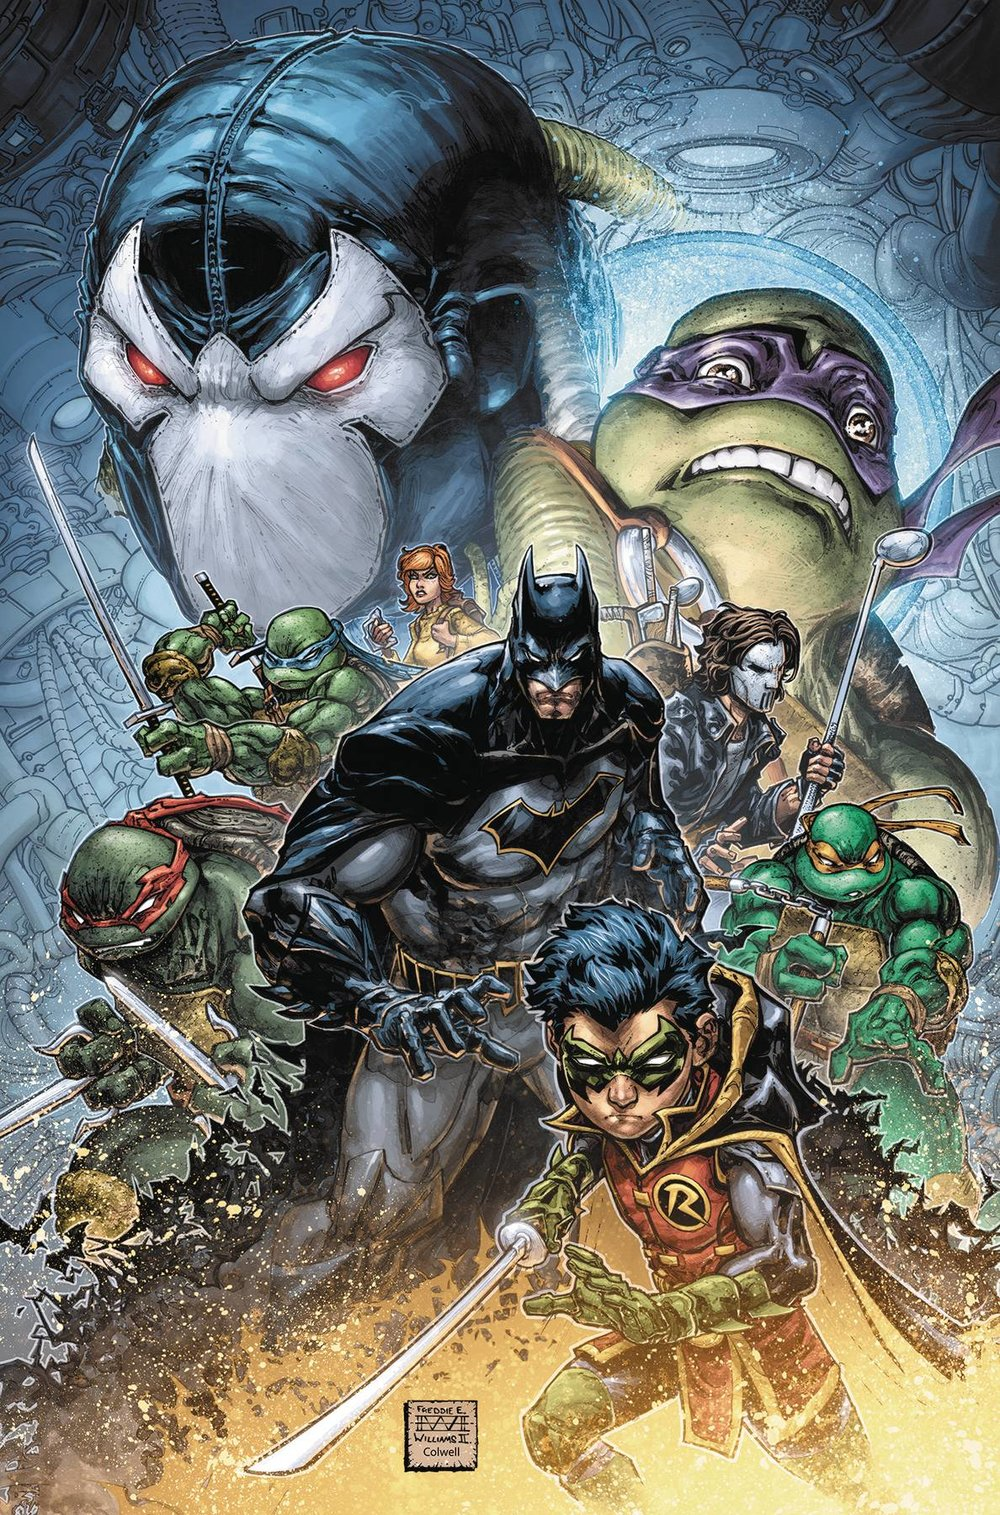 BATMAN TEENAGE MUTANT NINJA TURTLES II 1 of 6.jpg